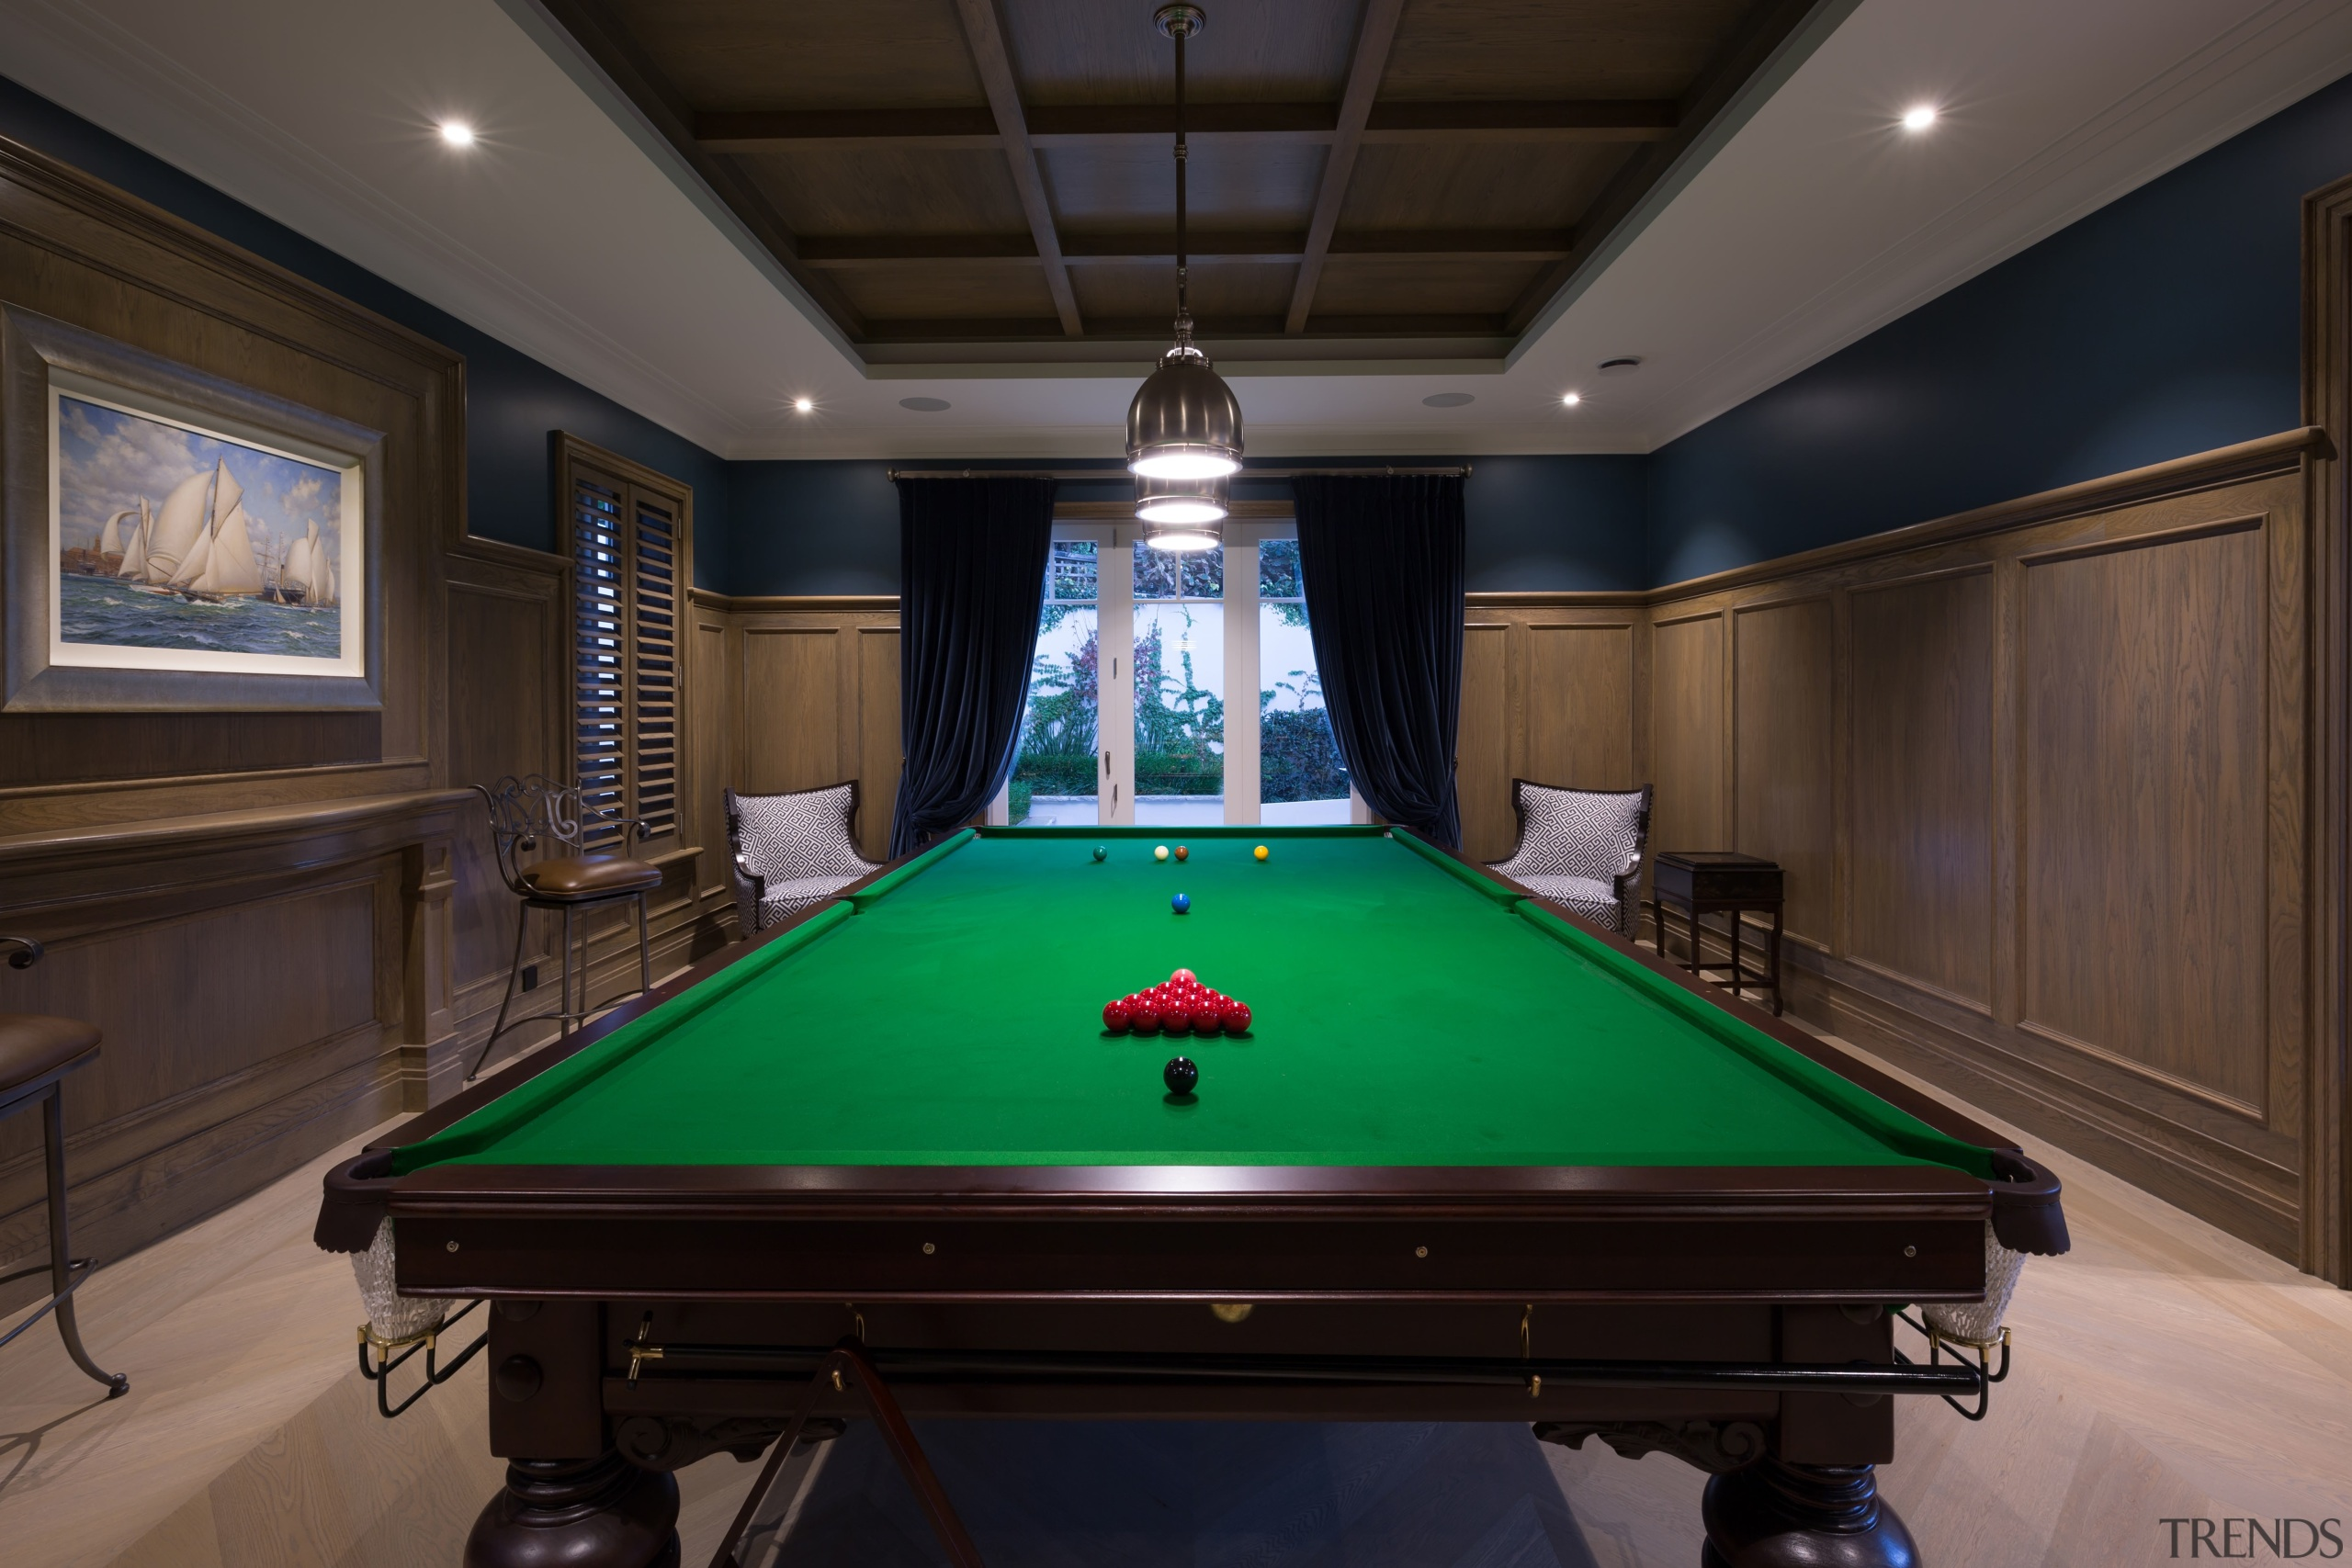 Ornate panelling seen on the ceiling and walls billiard room, billiard table, blackball pool, carom billiards, cue sports, english billiards, games, indoor games and sports, pocket billiards, pool, recreation room, room, snooker, table, black